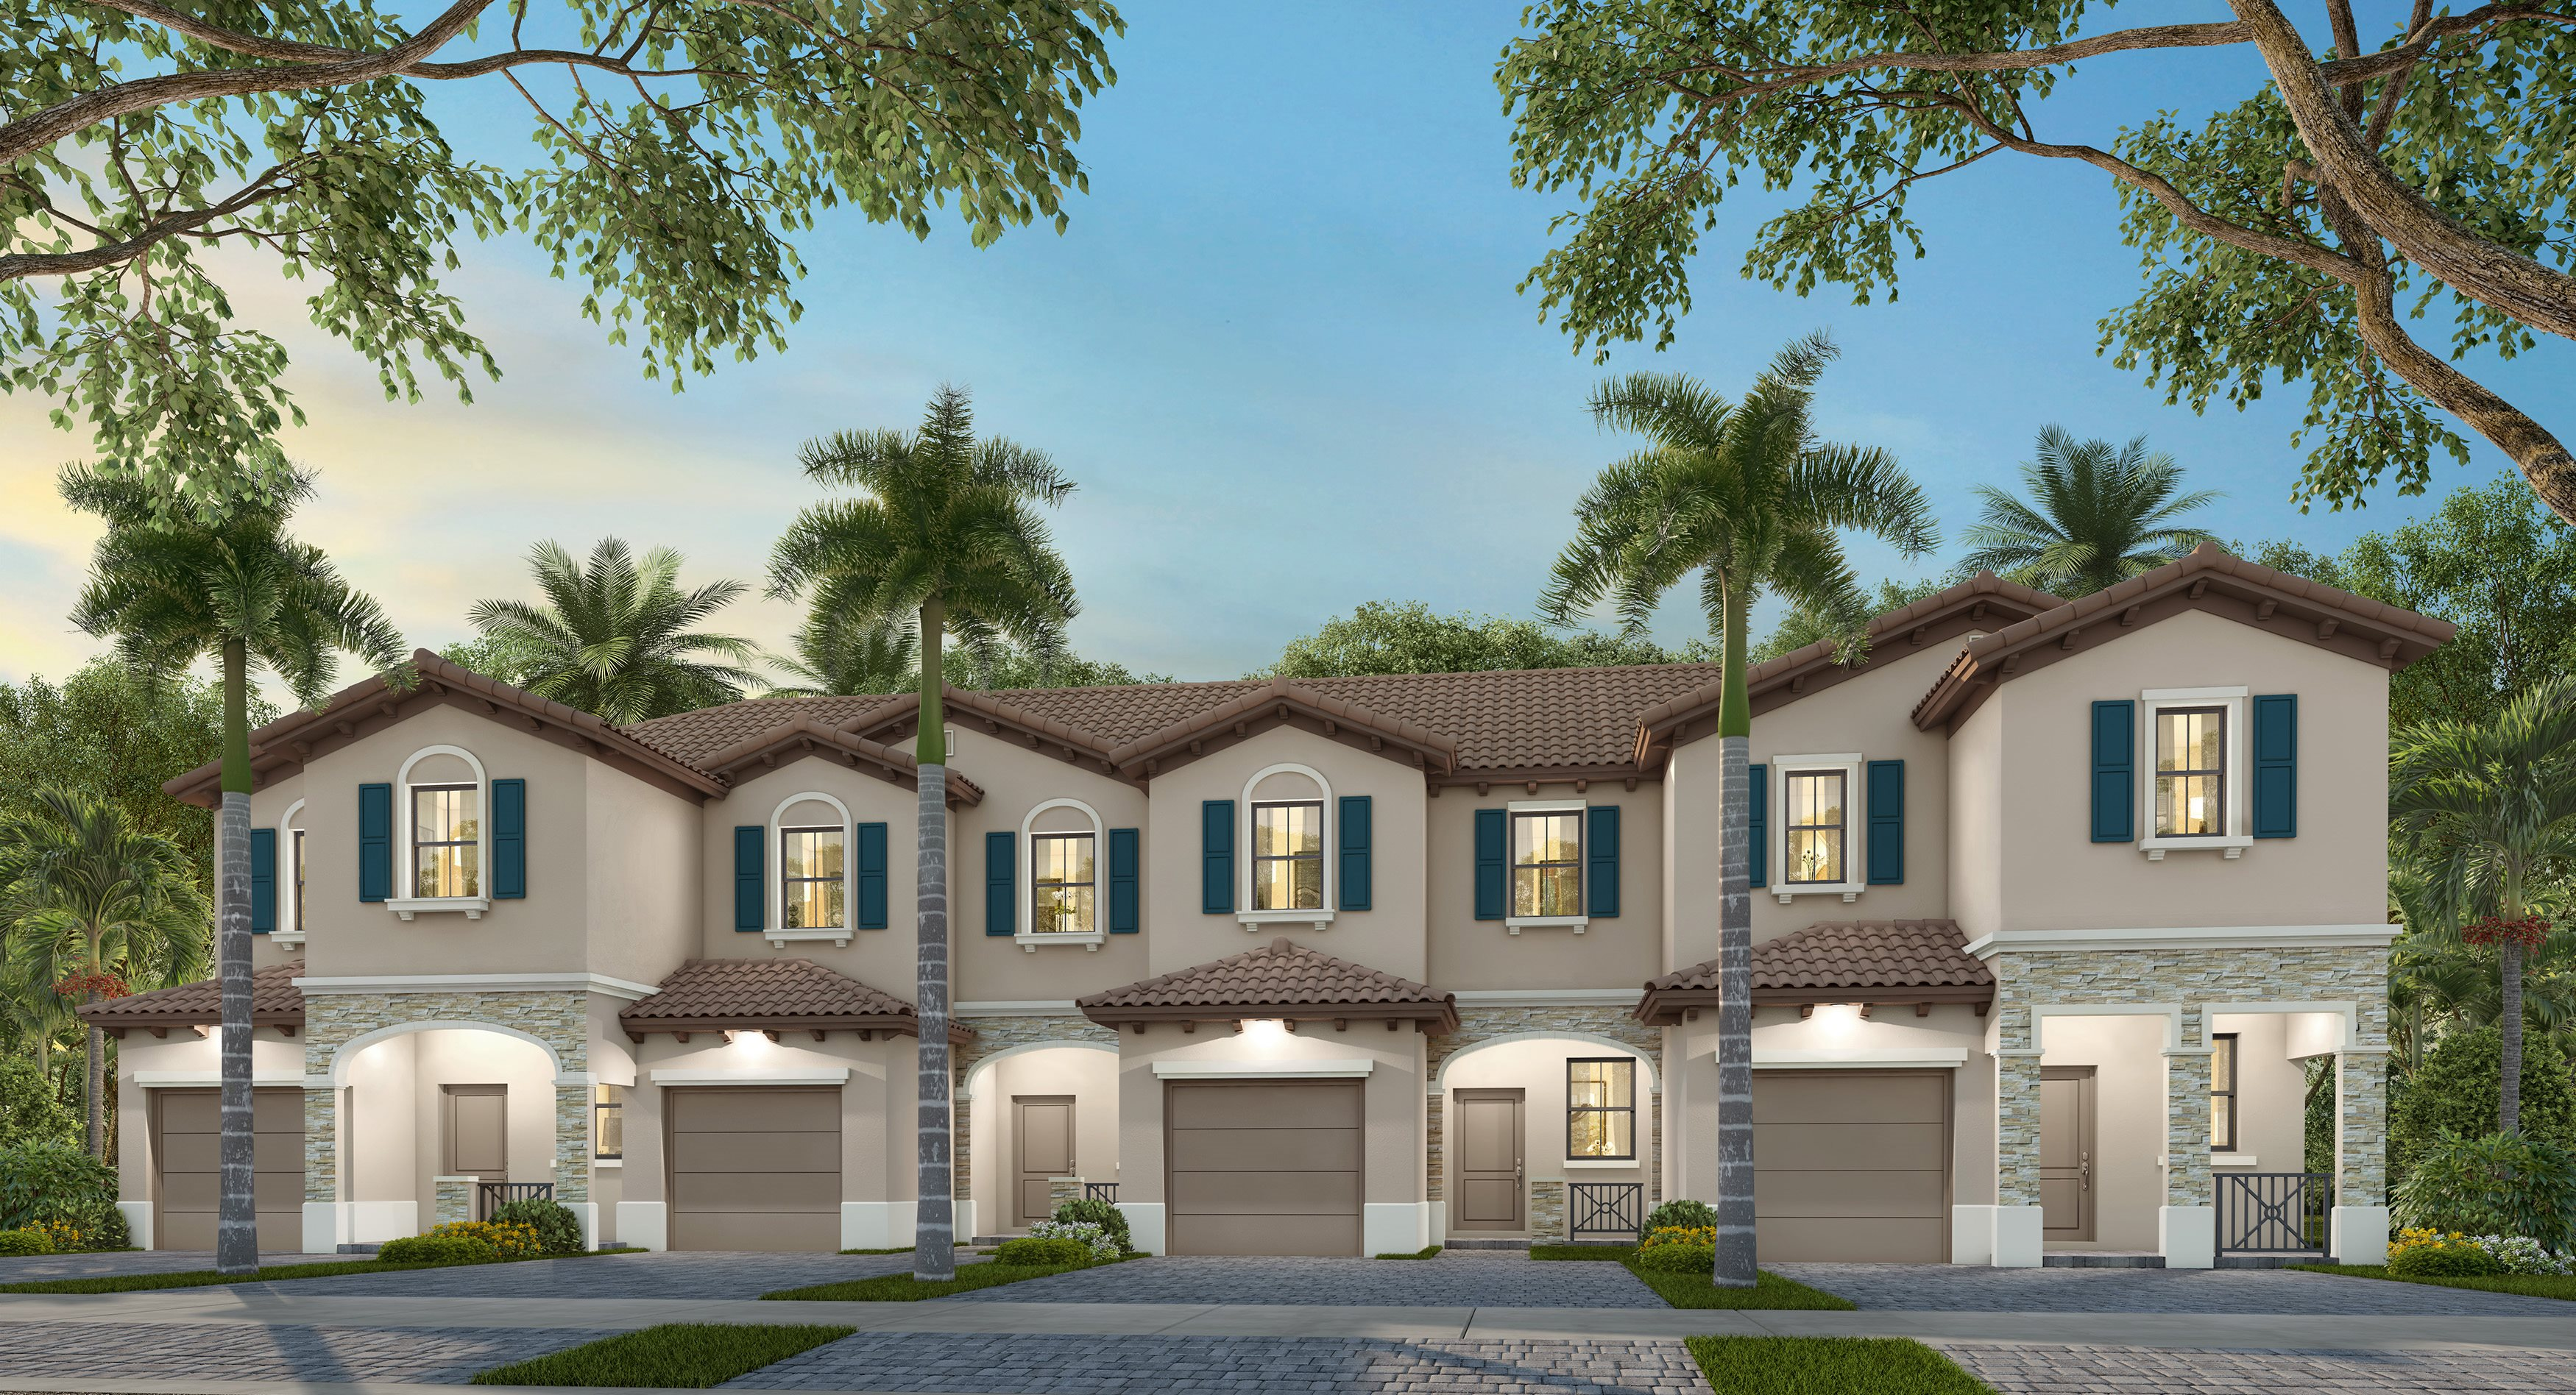 Spanish exterior rendering of townhome building